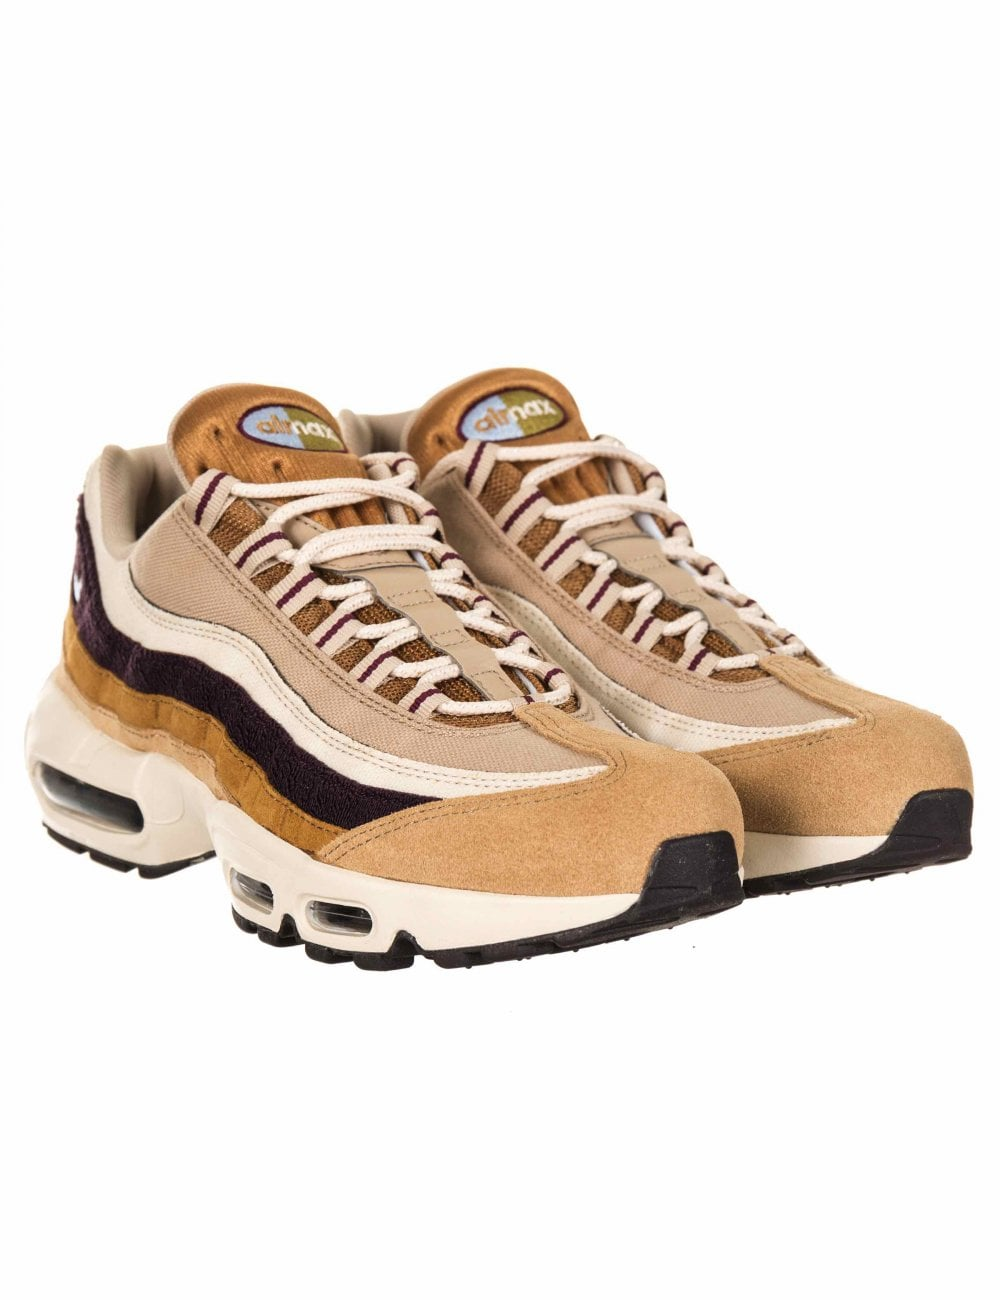 separation shoes 3a202 2ce75 Air Max 95 Premium Trainers - Desert Royal Tint